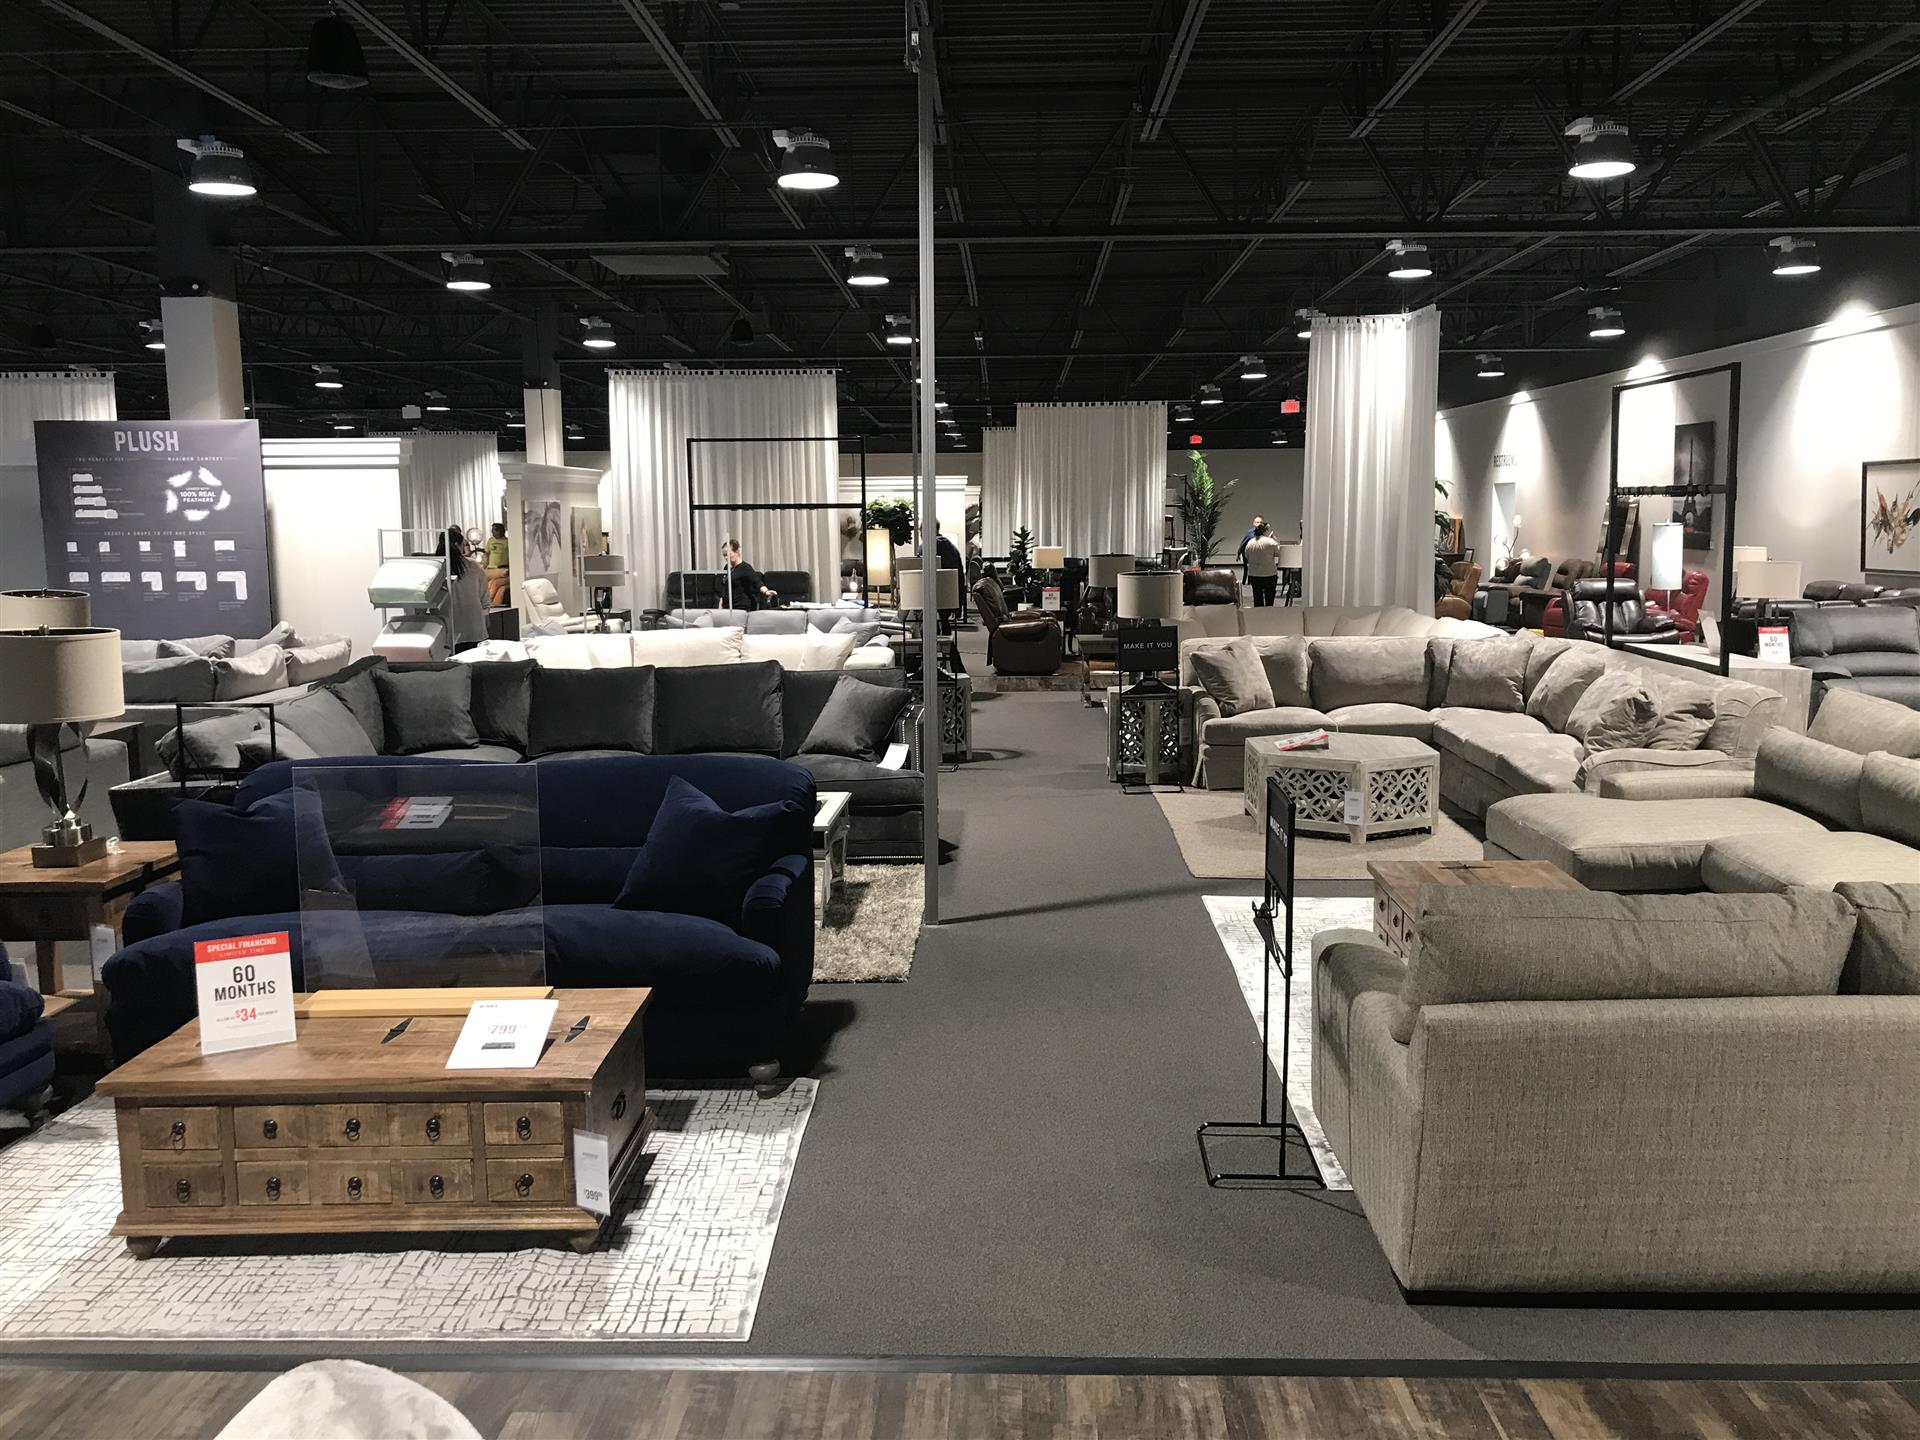 Vrious room set ups in a furniture store showing couches